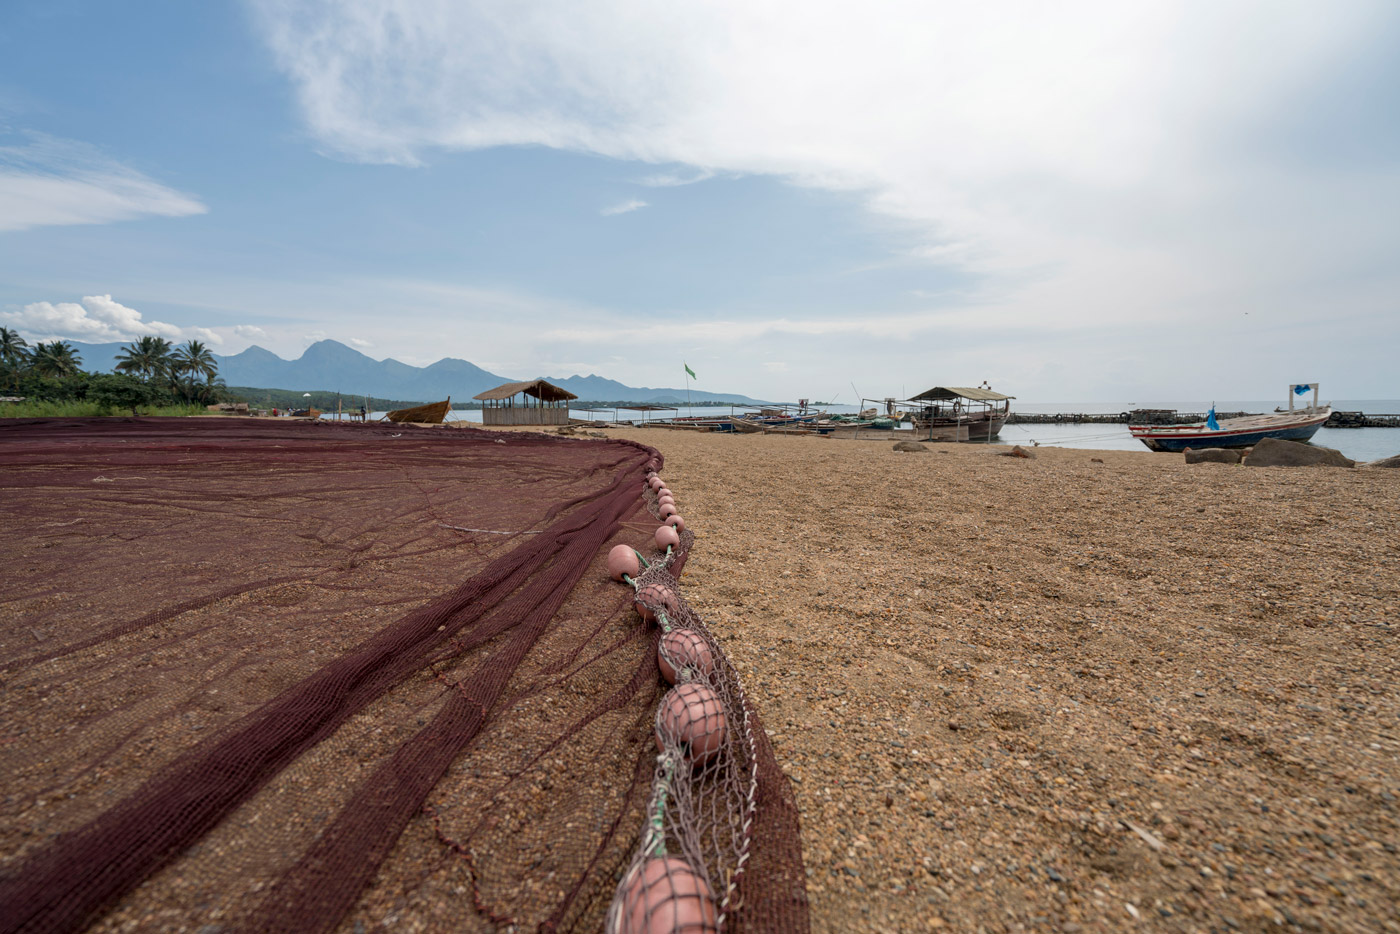 Fishing nets on the shore of Lake Malawi